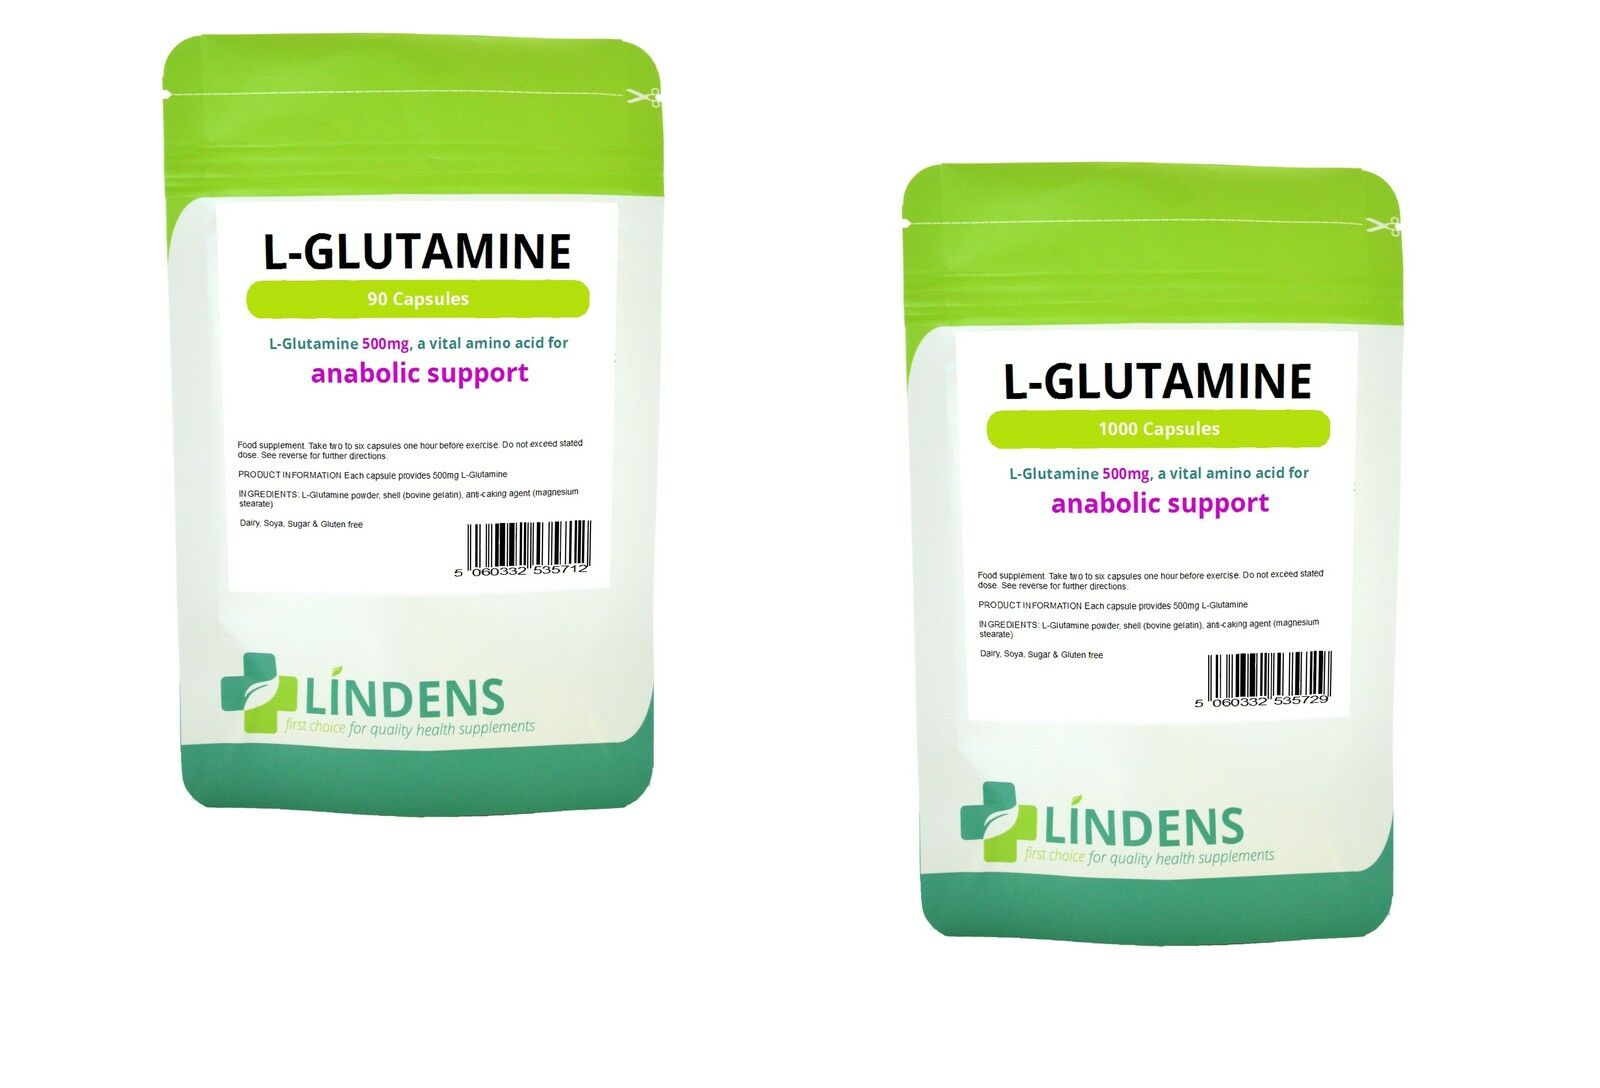 Lindens support l-glutamine - acides aminés 500mg 90 capsules Anabolique support Lindens sugar free 2f2ee0